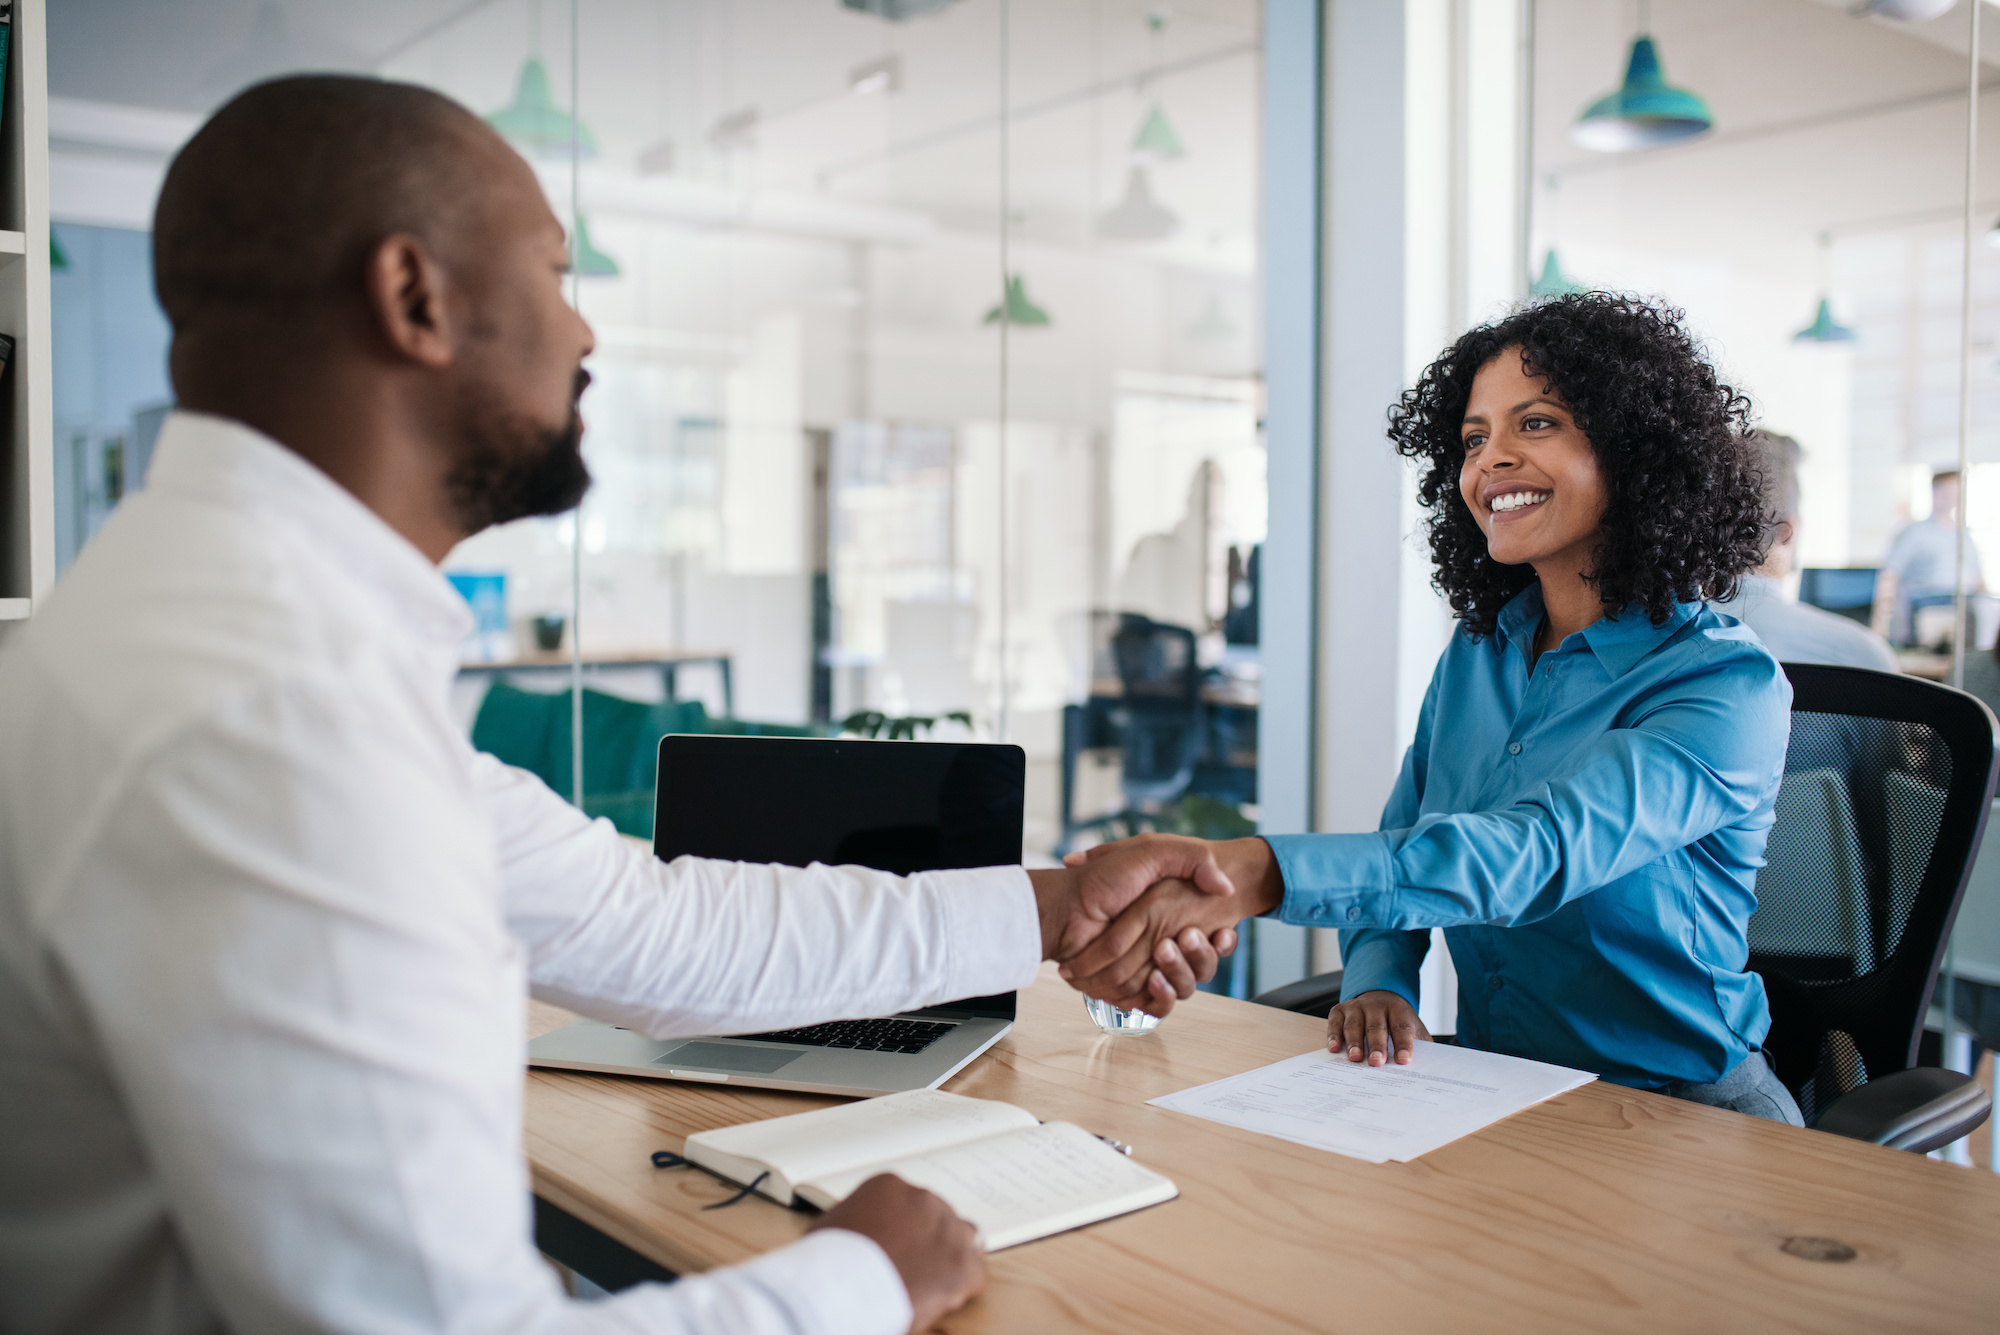 2 coworkers shaking hands over a desk in an office